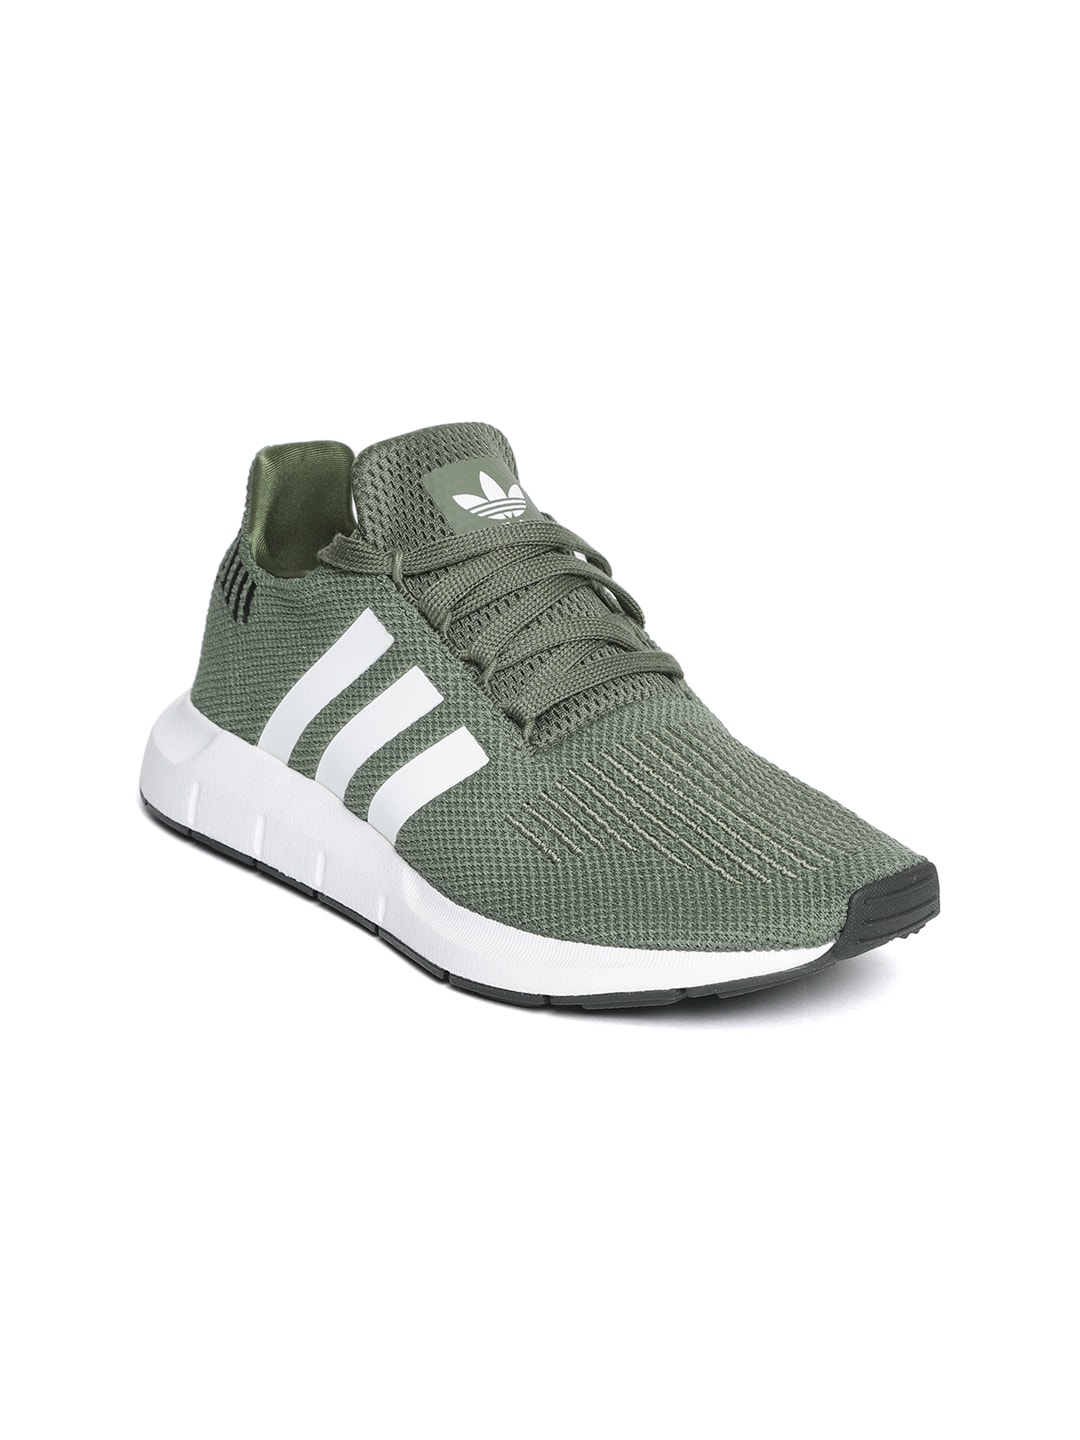 17e270f7f Adidas Originals Shoes - Buy Adidas Originals Shoes Online in India